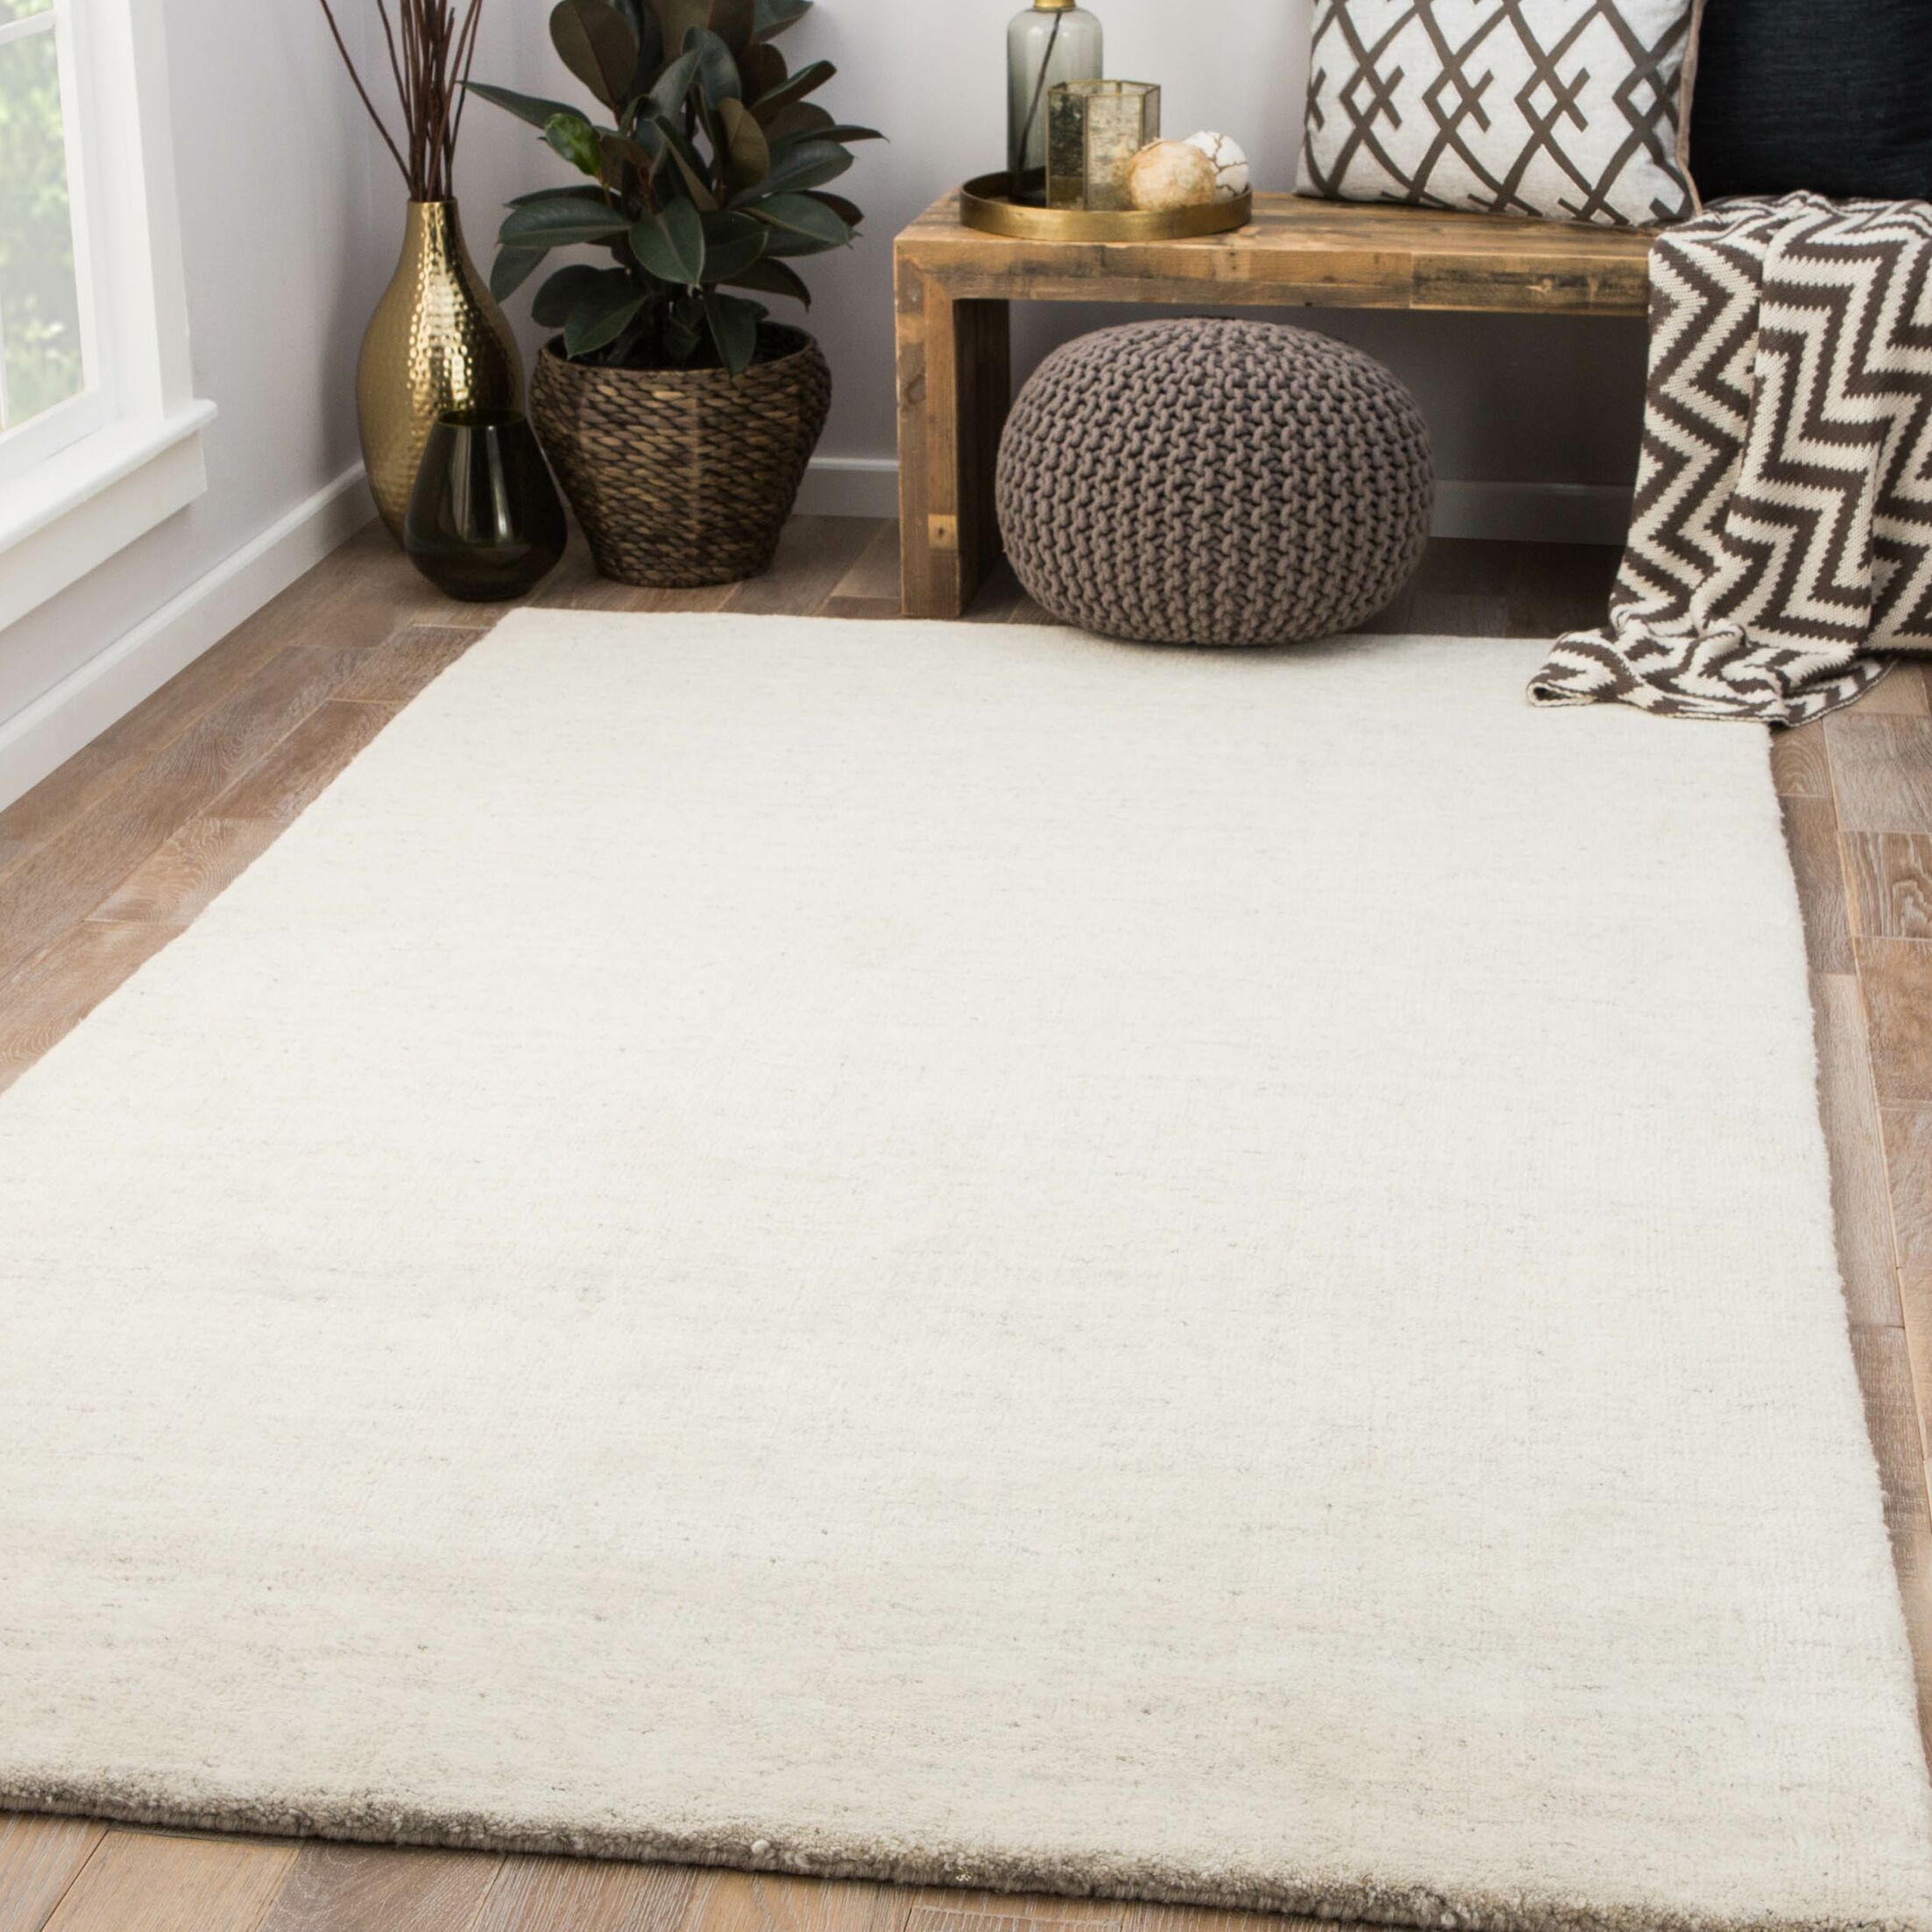 Flemingdon Hand-Woven Wool Ivory Area Rug Rug Size: Rectangle 5' x 8'